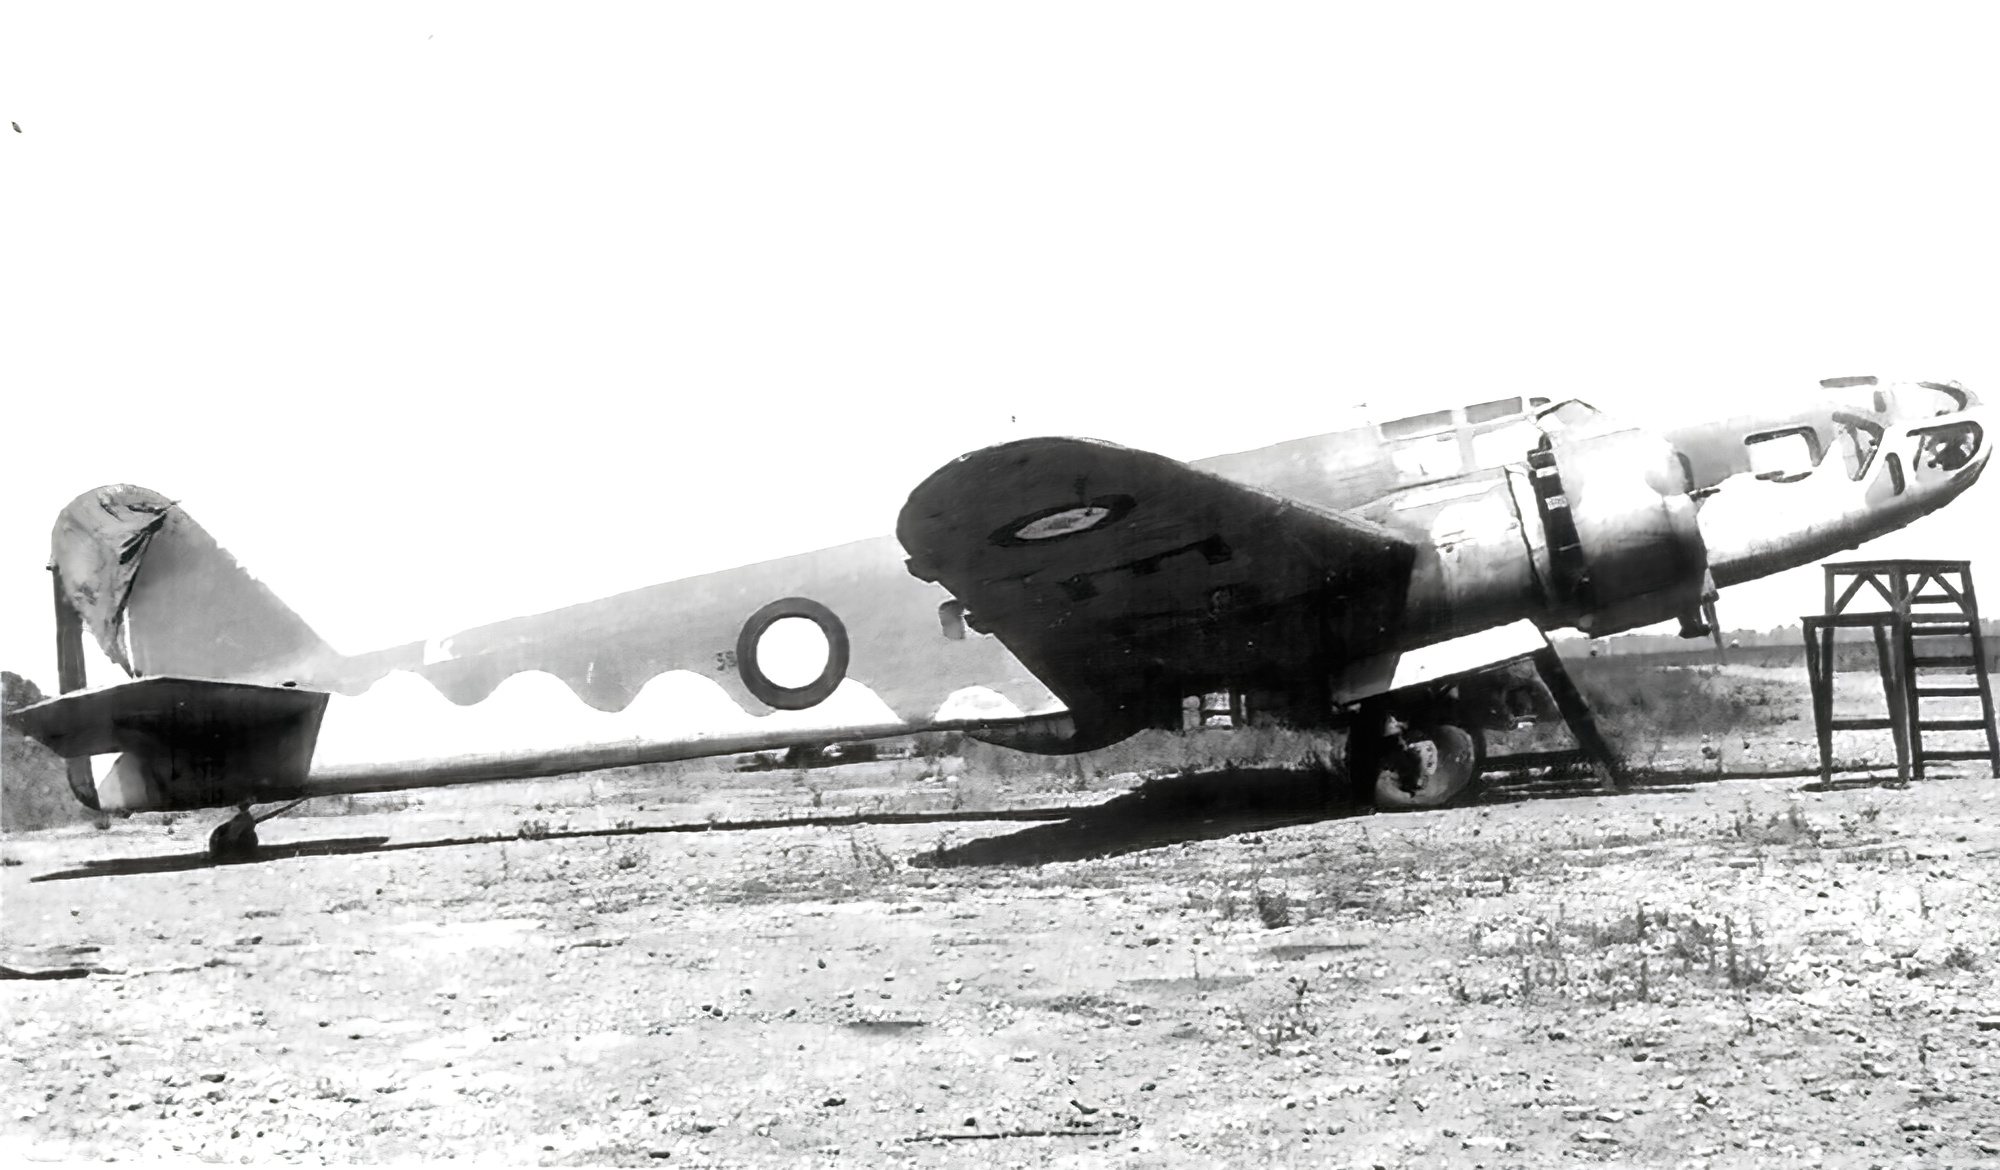 French Airforce Bloch MB 131 captured after the fall of France June 1940 ebay 01